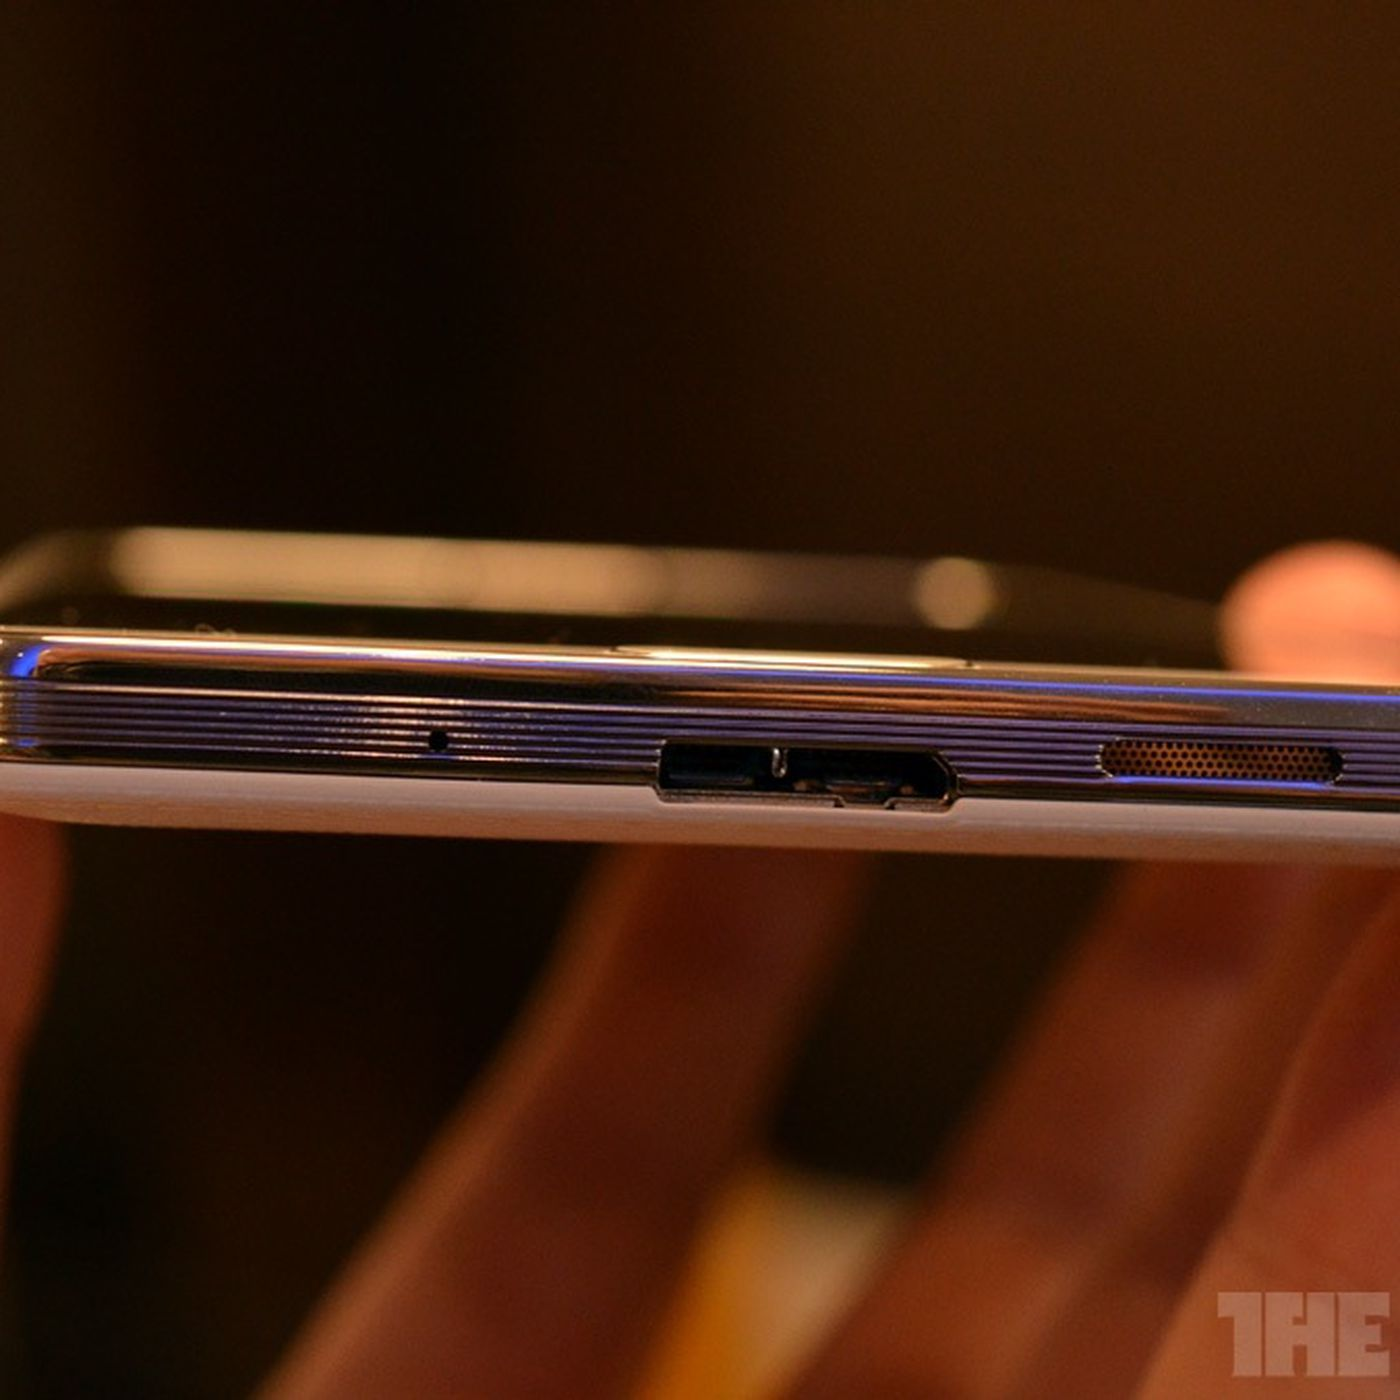 Galaxy Note 3 First Phone To Feature Ugly New Micro Usb Port The 3s Fe Engine Control Wiring Diagram Verge